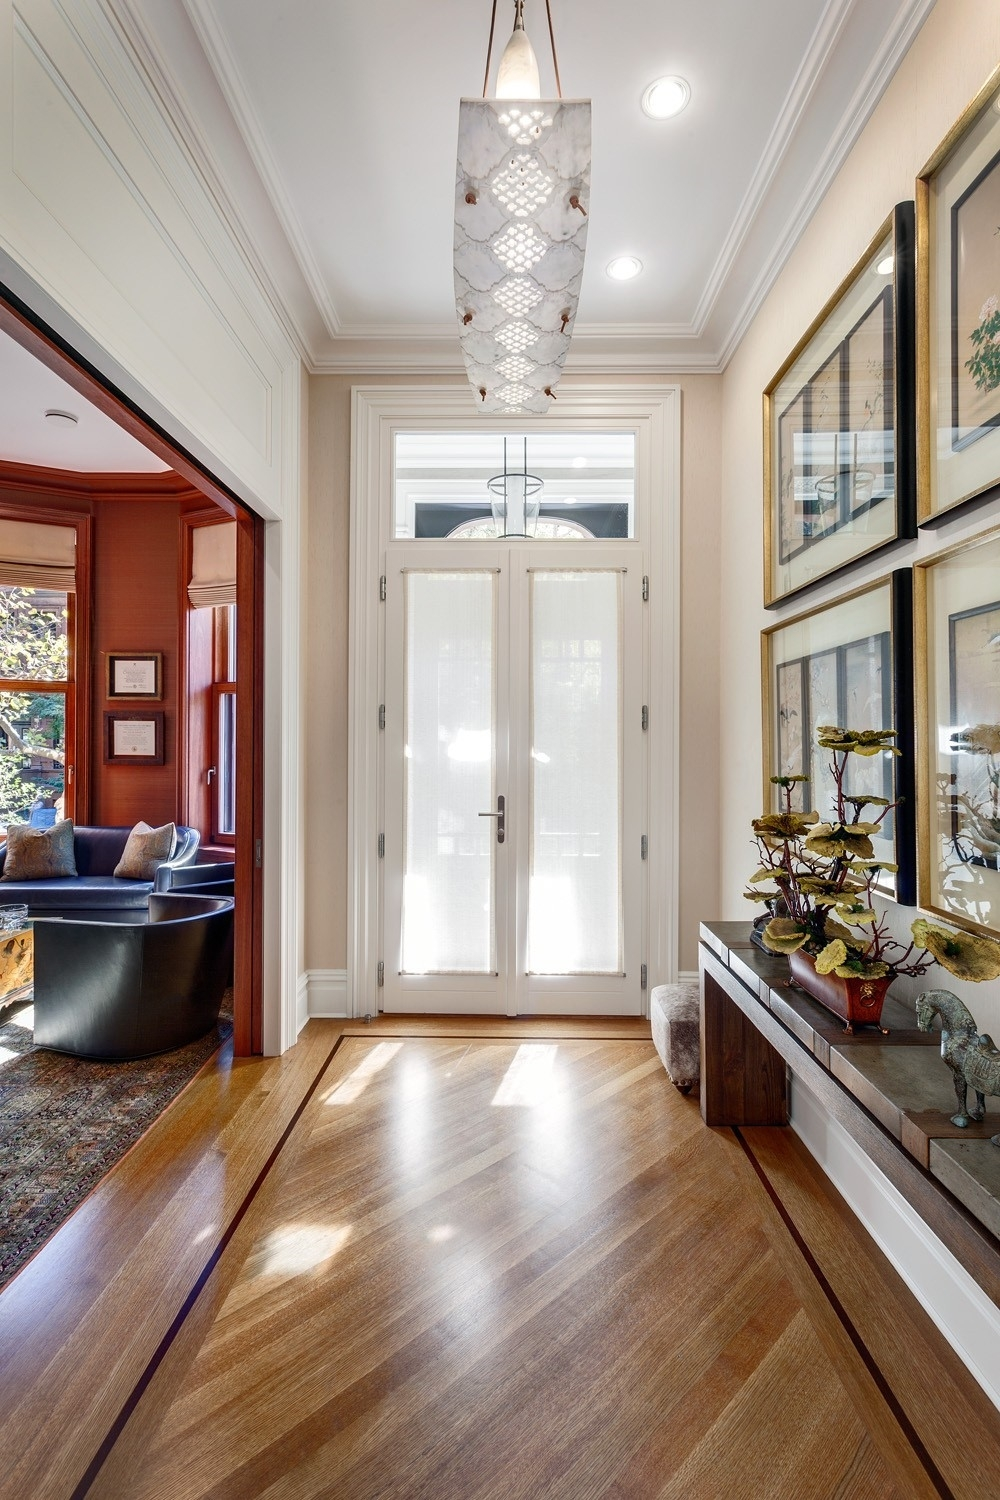 3. Single Family Townhouse for Sale at Upper West Side, New York, NY 10024